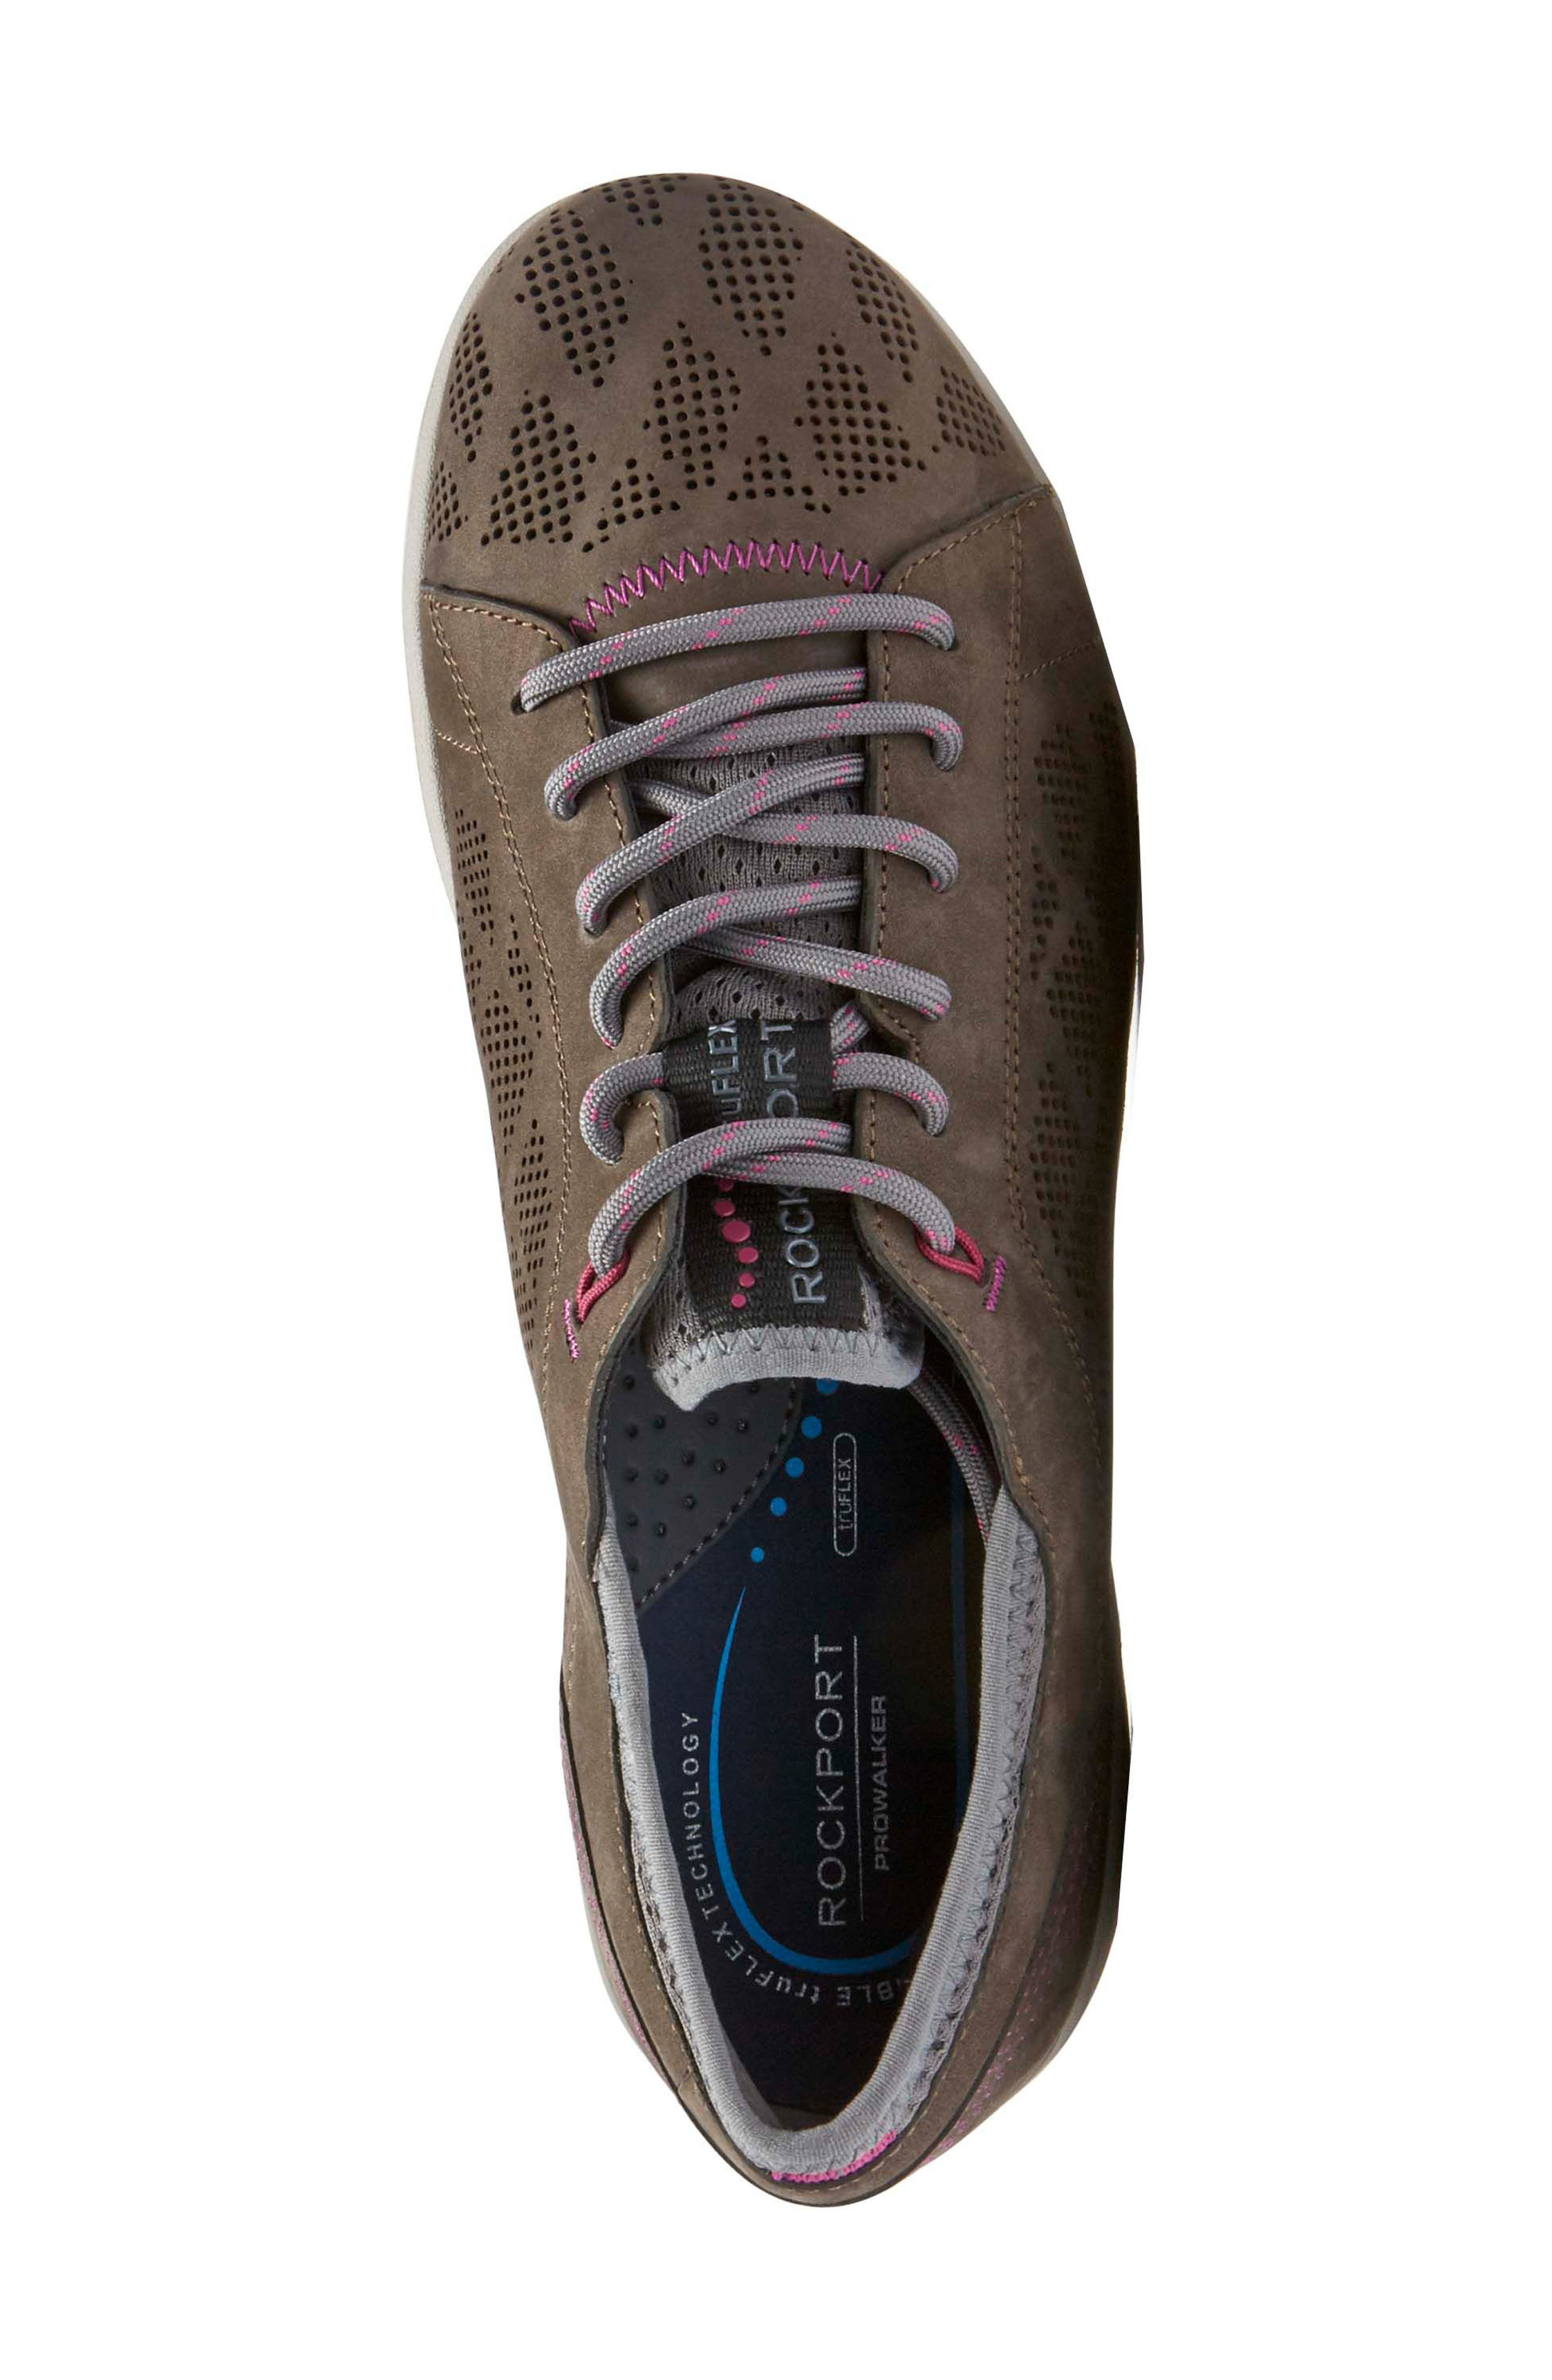 truFLEX Perforated Sneaker,                             Alternate thumbnail 4, color,                             Stone Leather